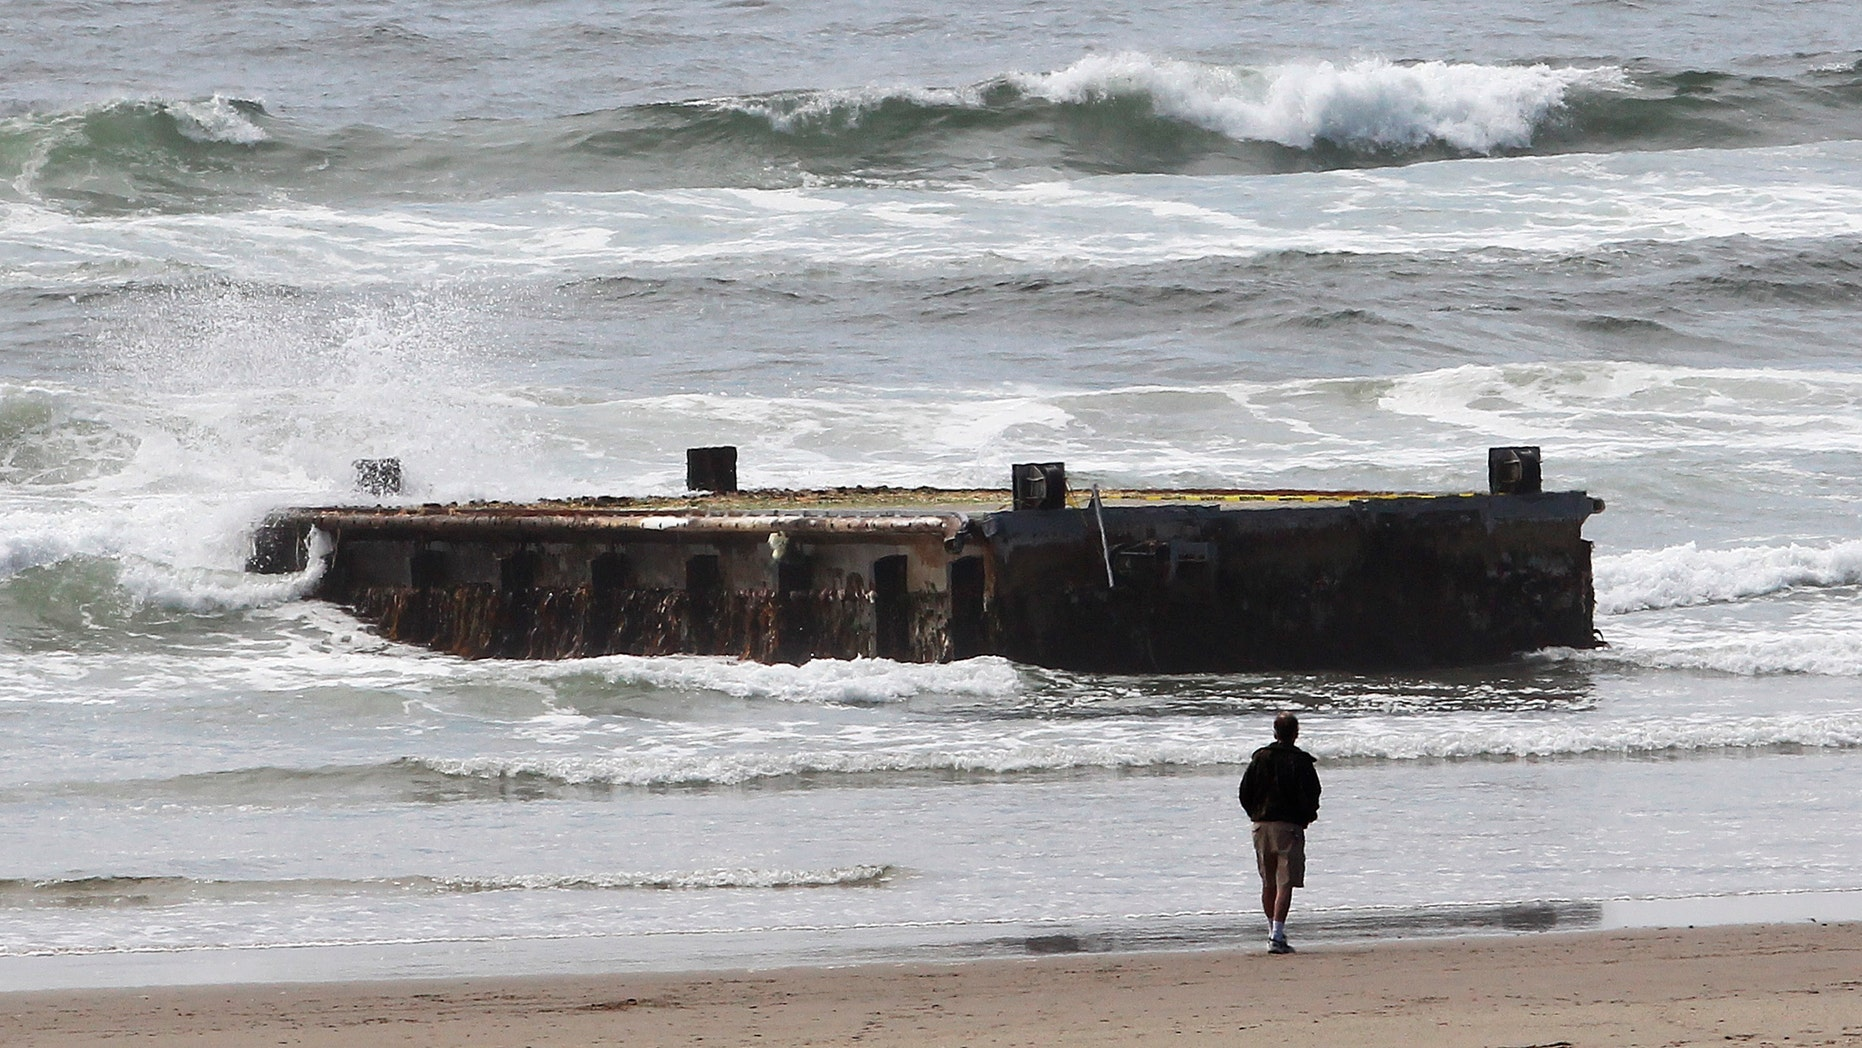 June 6, 2012: In this file photo, a man looks at a 70-foot-long dock with Japanese lettering that washed ashore on Agate Beach in Newport, Ore.